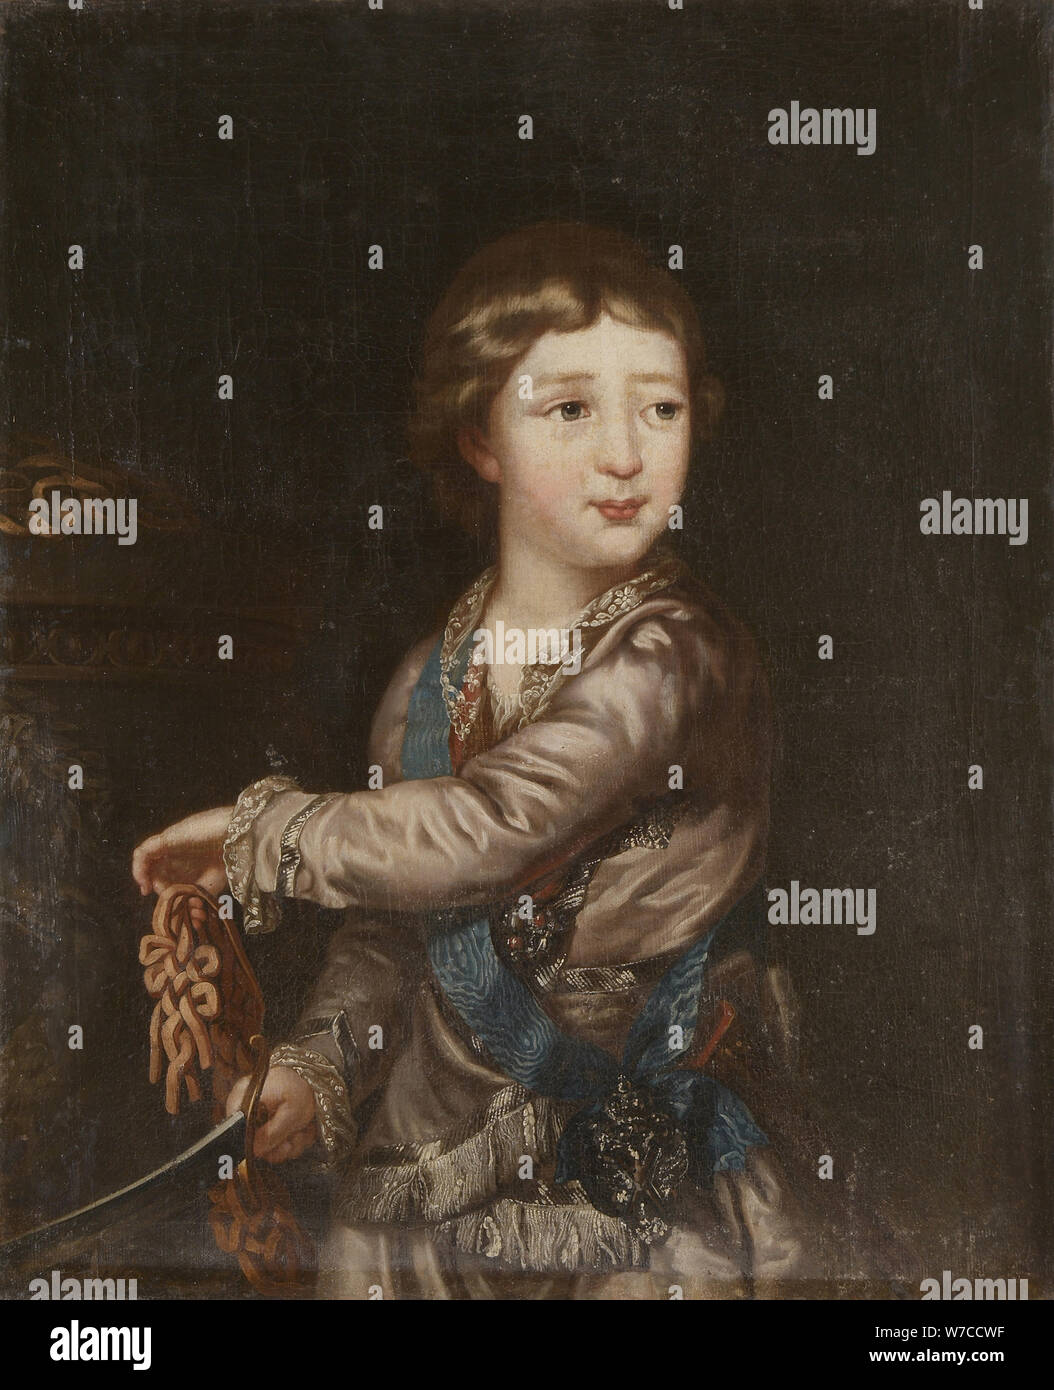 Portrait of Grand Duke Alexander Pavlovich (1777-1825) as Child. Stock Photo